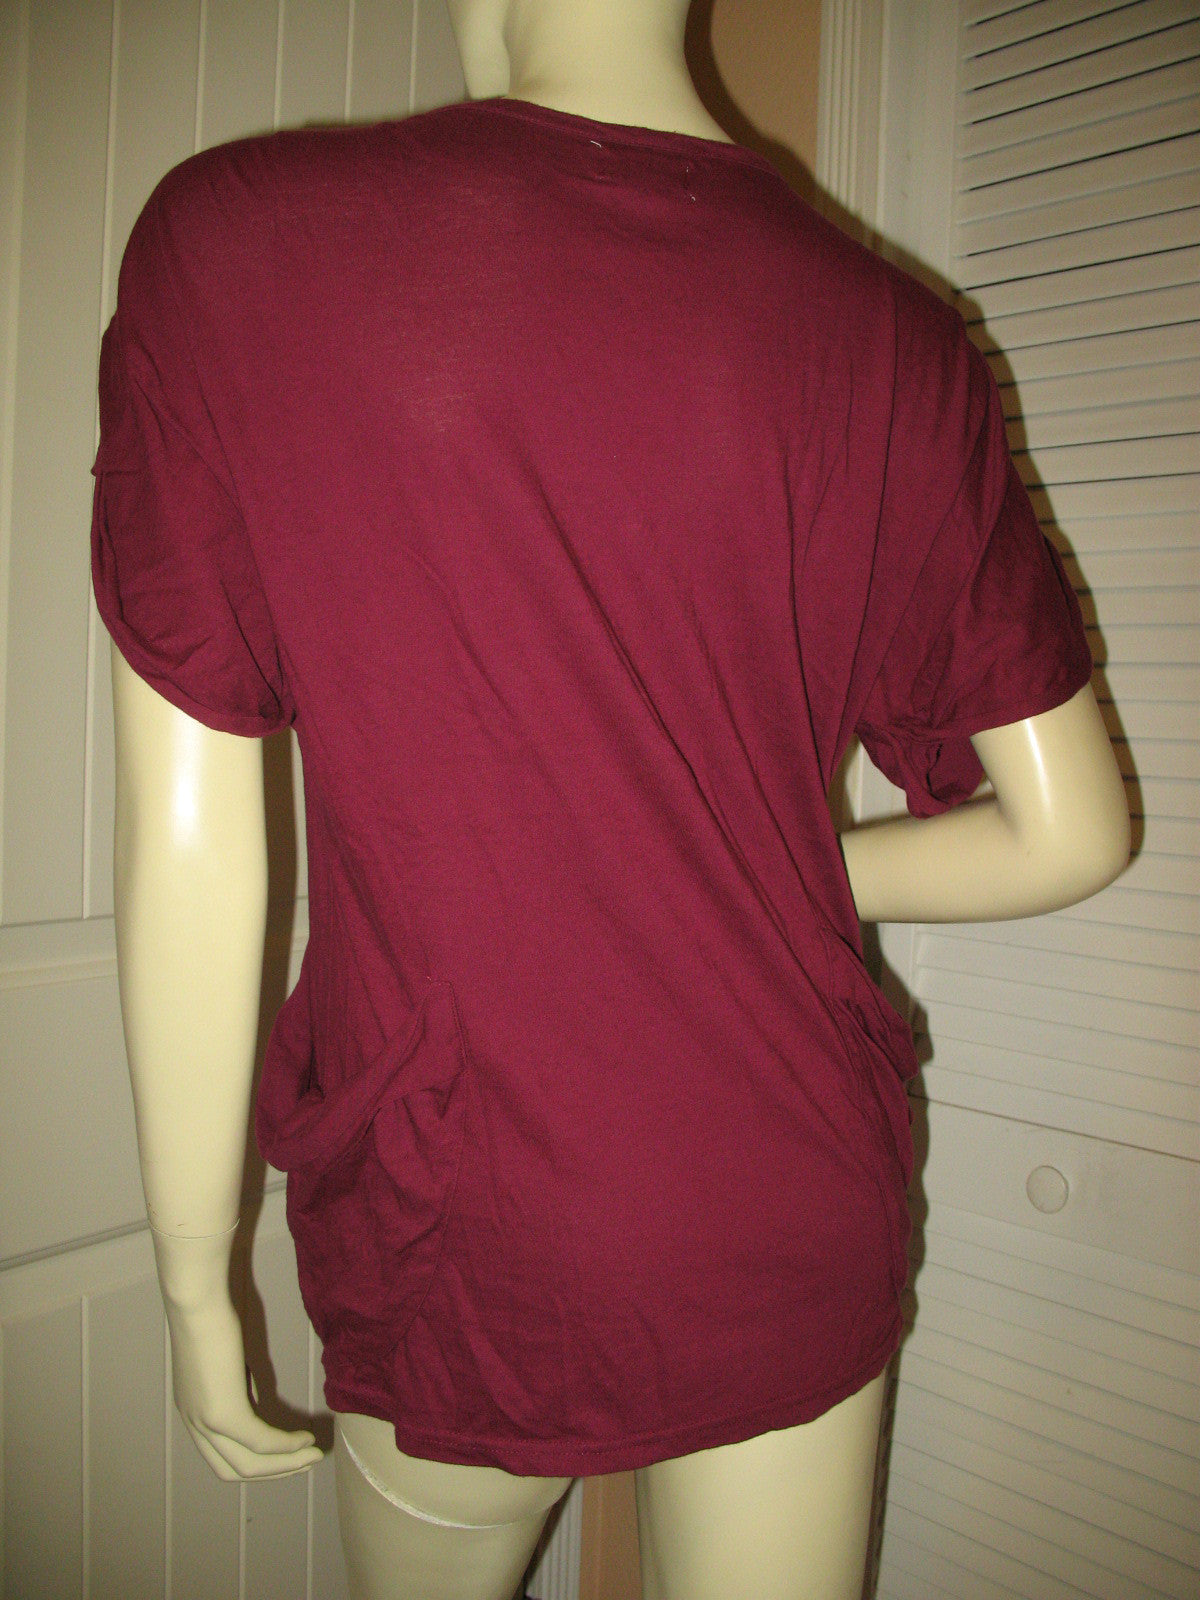 Womens Tops Deep RED WINE MAROON BURGUNDY Short Sleeve Button Down V-Neck  TOP SHIRT Small Casual Clothes 6251e1edf